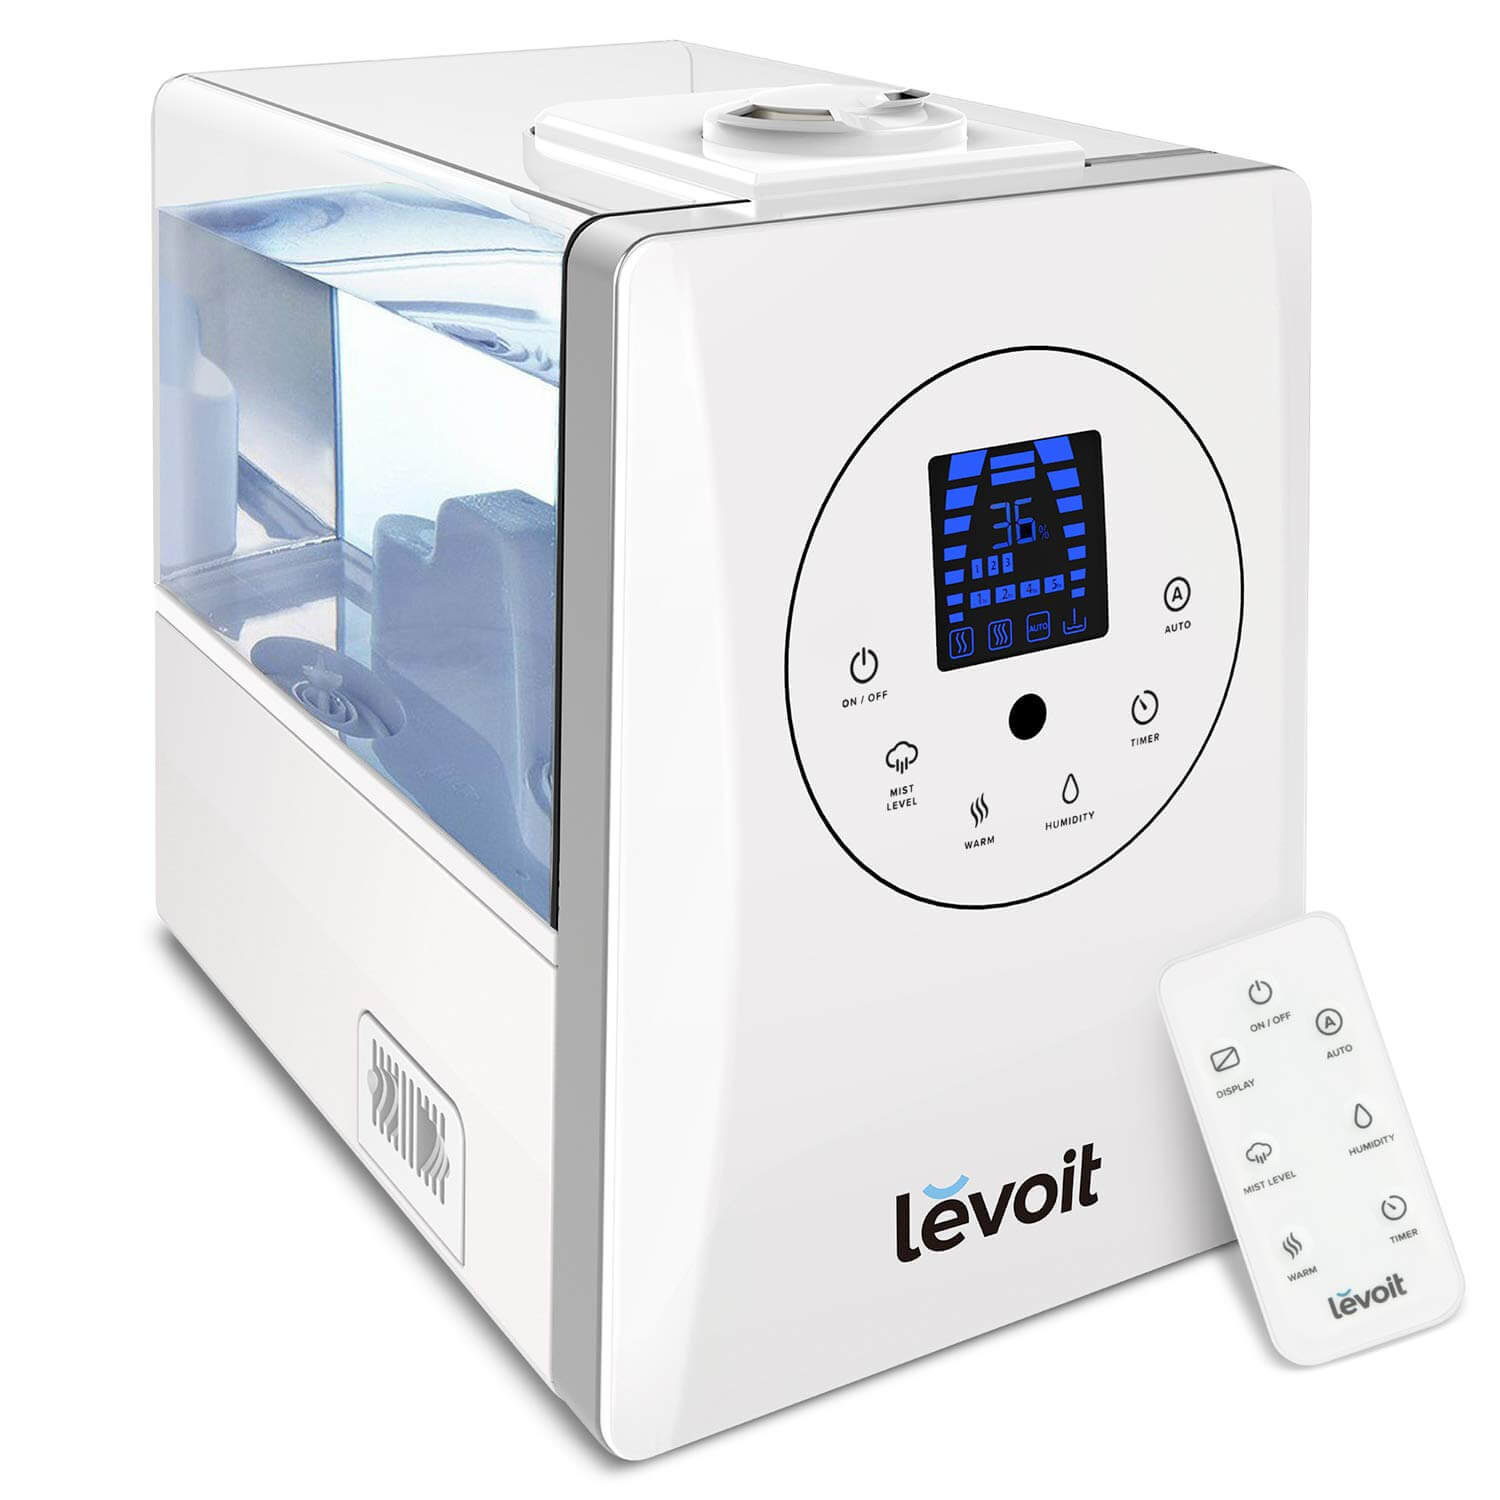 LEVOIT Humidifiers for Large Room Bedroom (6L), Warm and Cool Mist Ultrasonic Air Humidifier for Home Whole House Babies Room, Customized Humidity, Remote, Germ Free and Whisper-Quiet